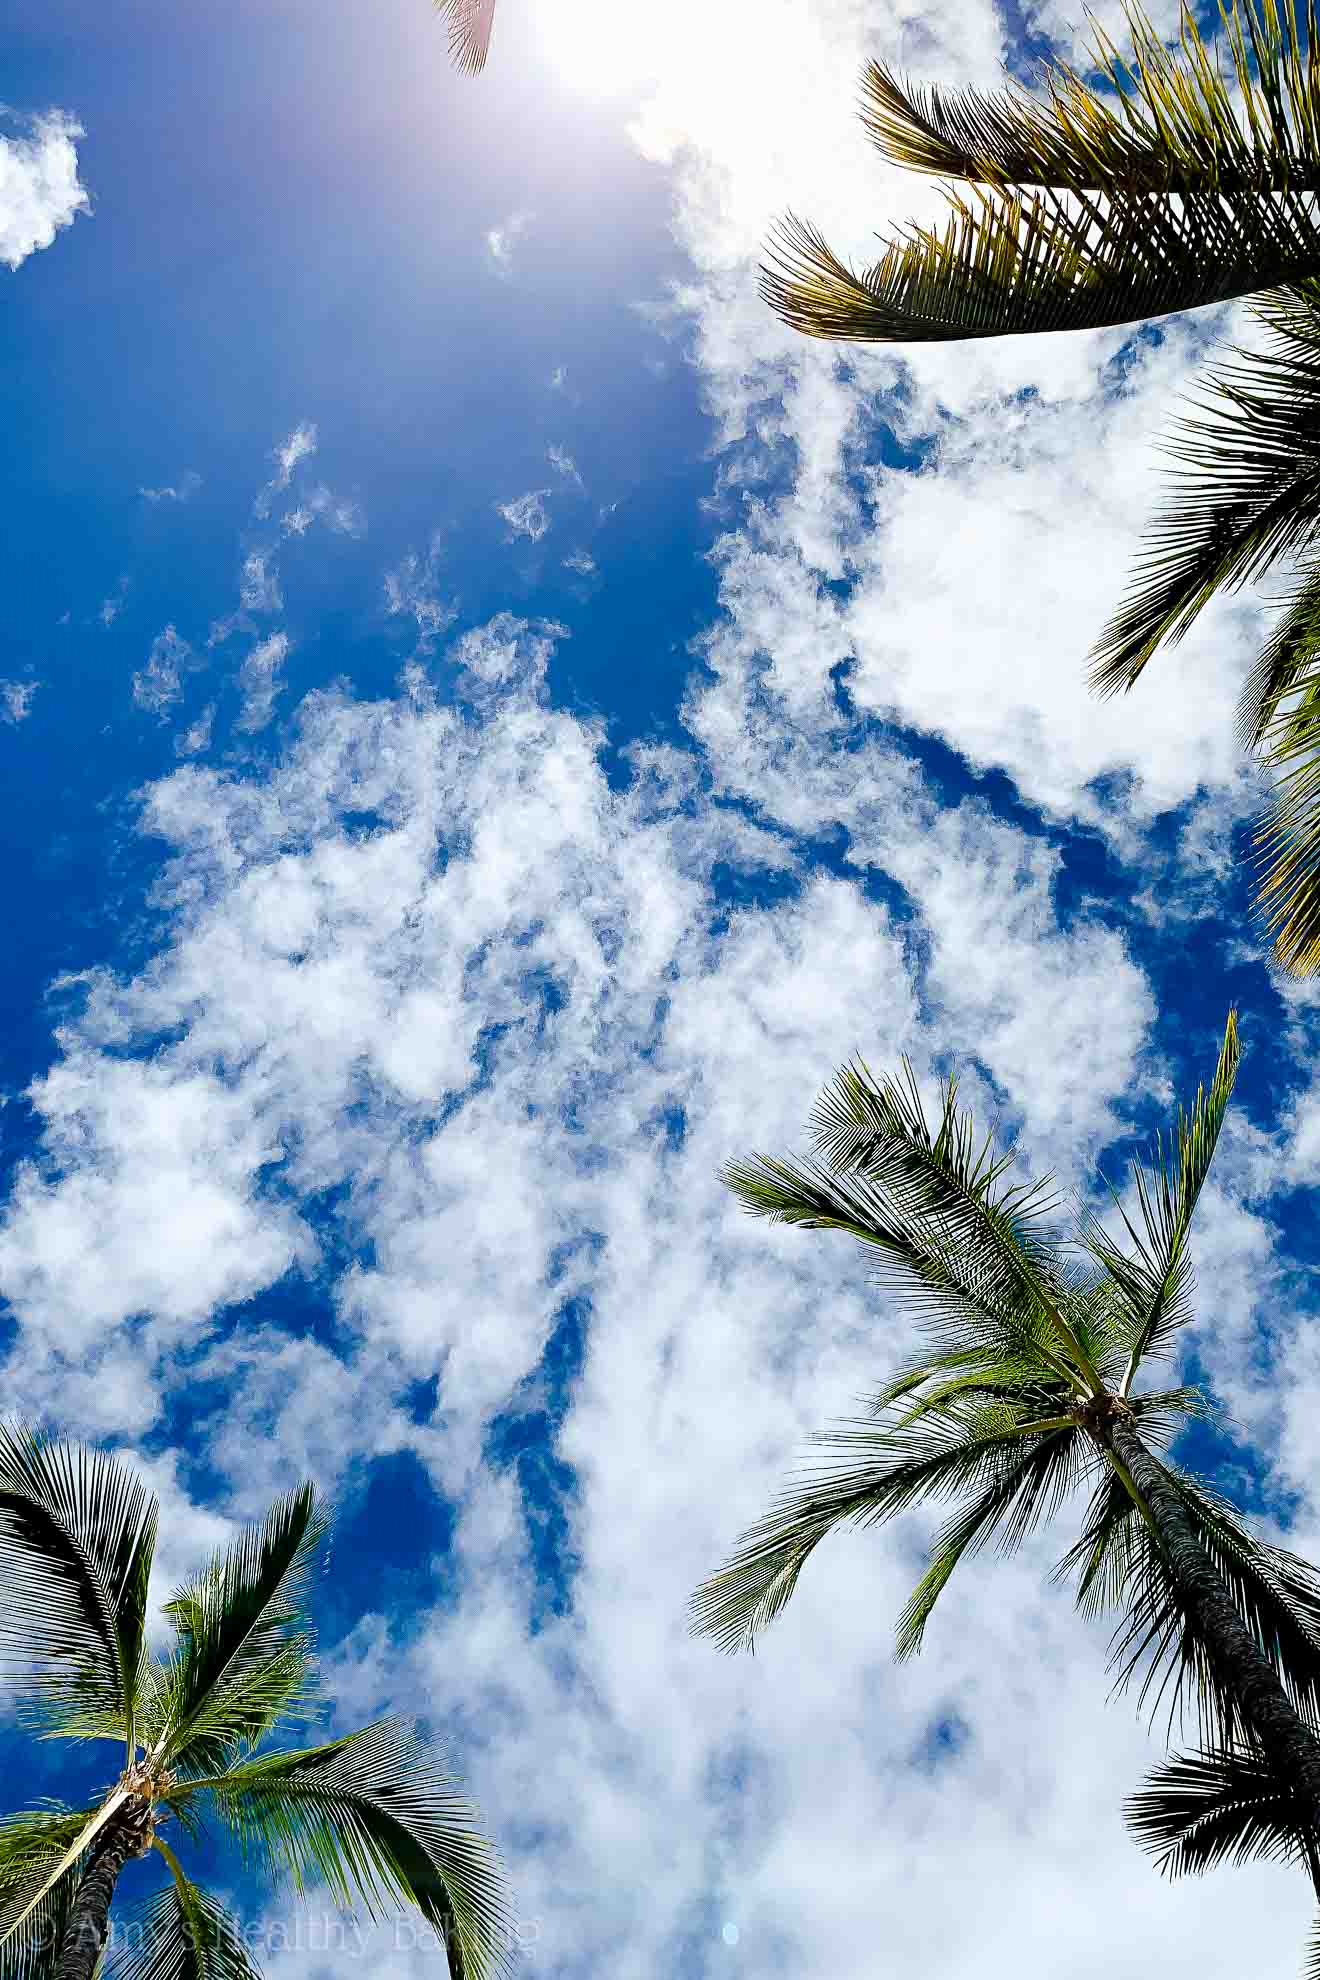 Palm trees, clouds and a bright blue sky in Waikoloa on the Big Island of Hawaii